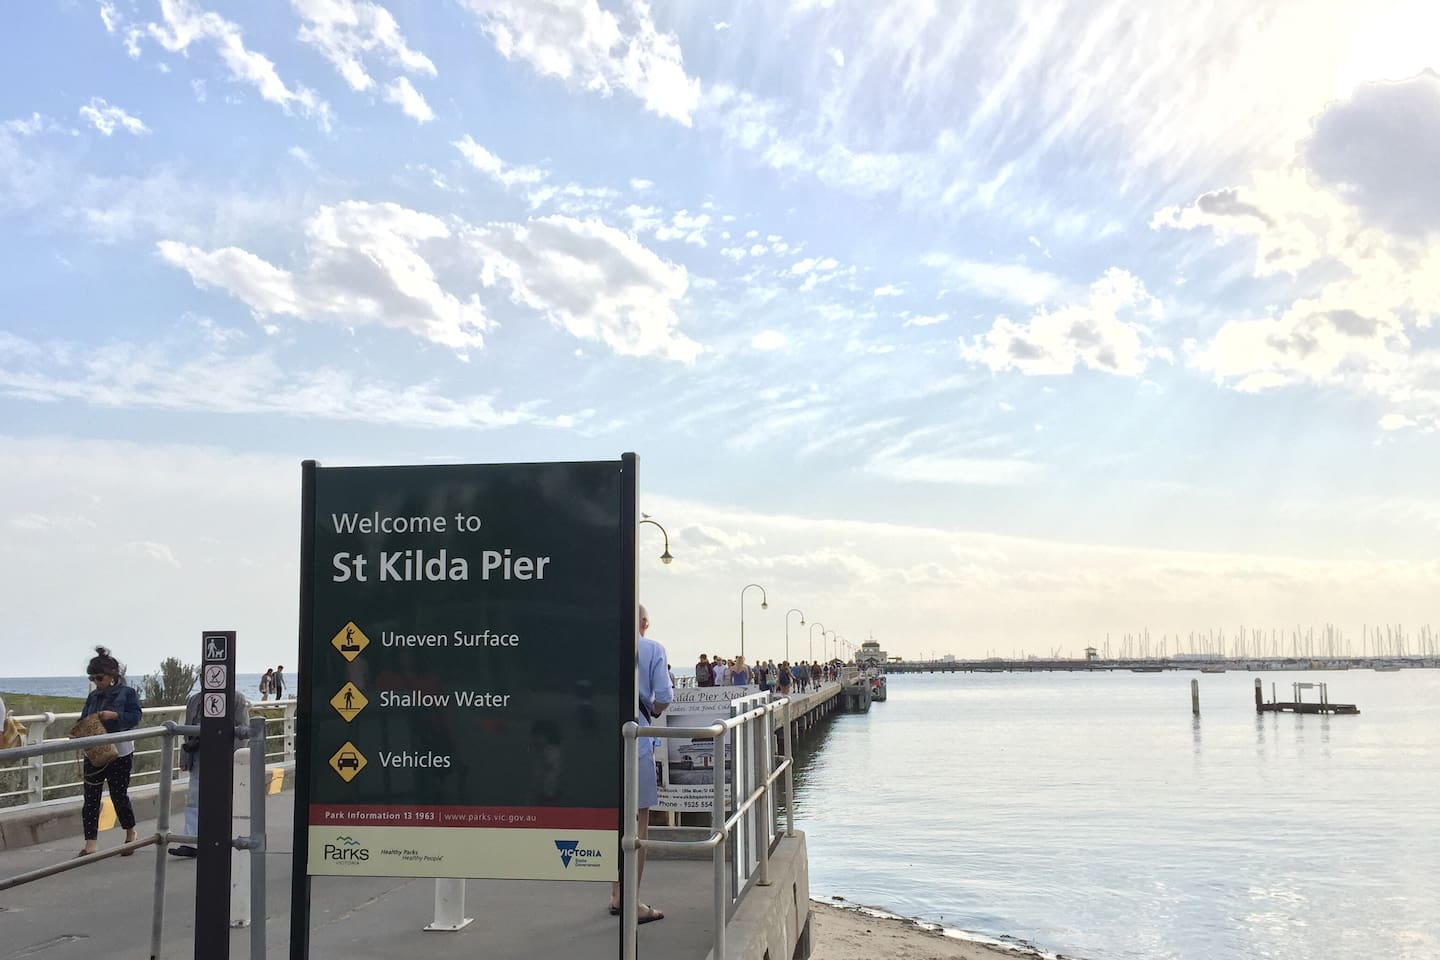 St Kilda Pier is 5 min walk away. The Penguin viewing is just steps down the pier.